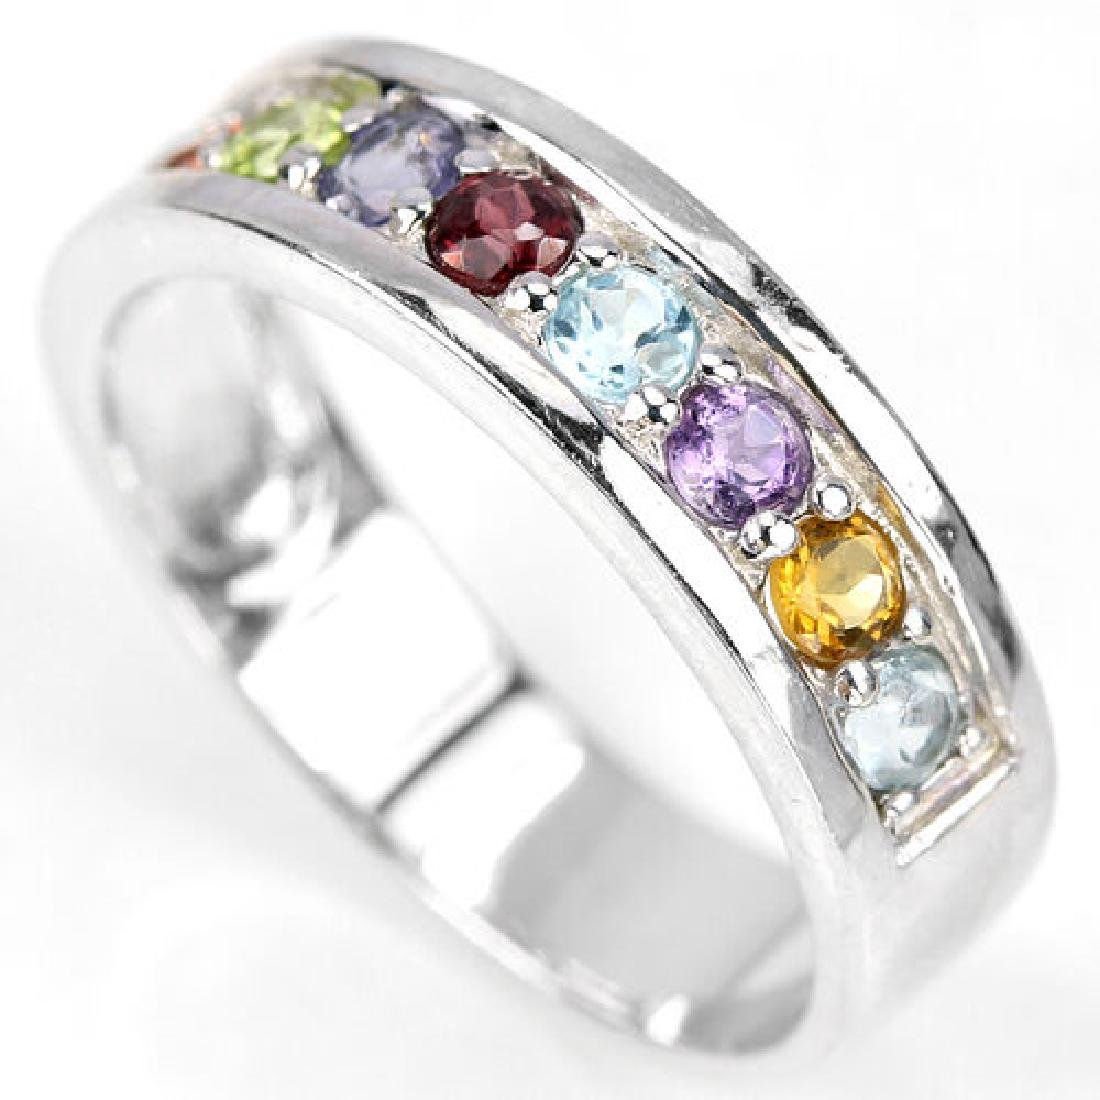 Sterling Silver Natural Gemstone Multigem Ring Size N.5 - 2